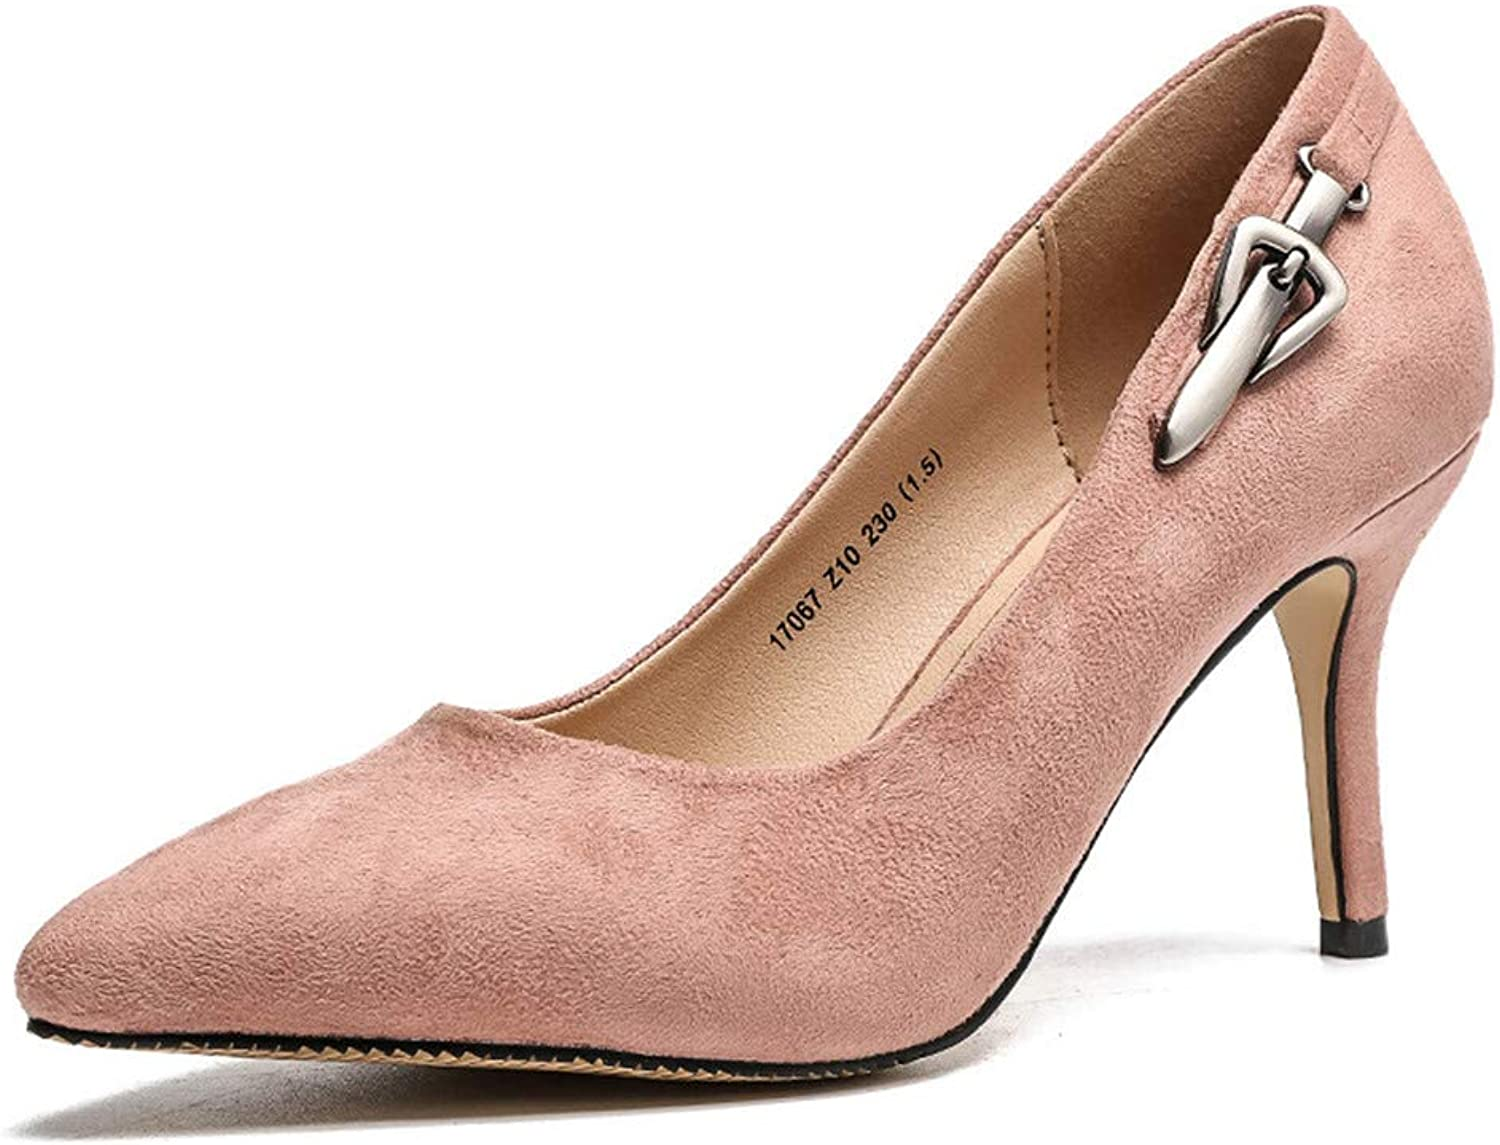 Meiren Fashion Women's shoes Autumn High Heels Stiletto Pointed shoes Pink